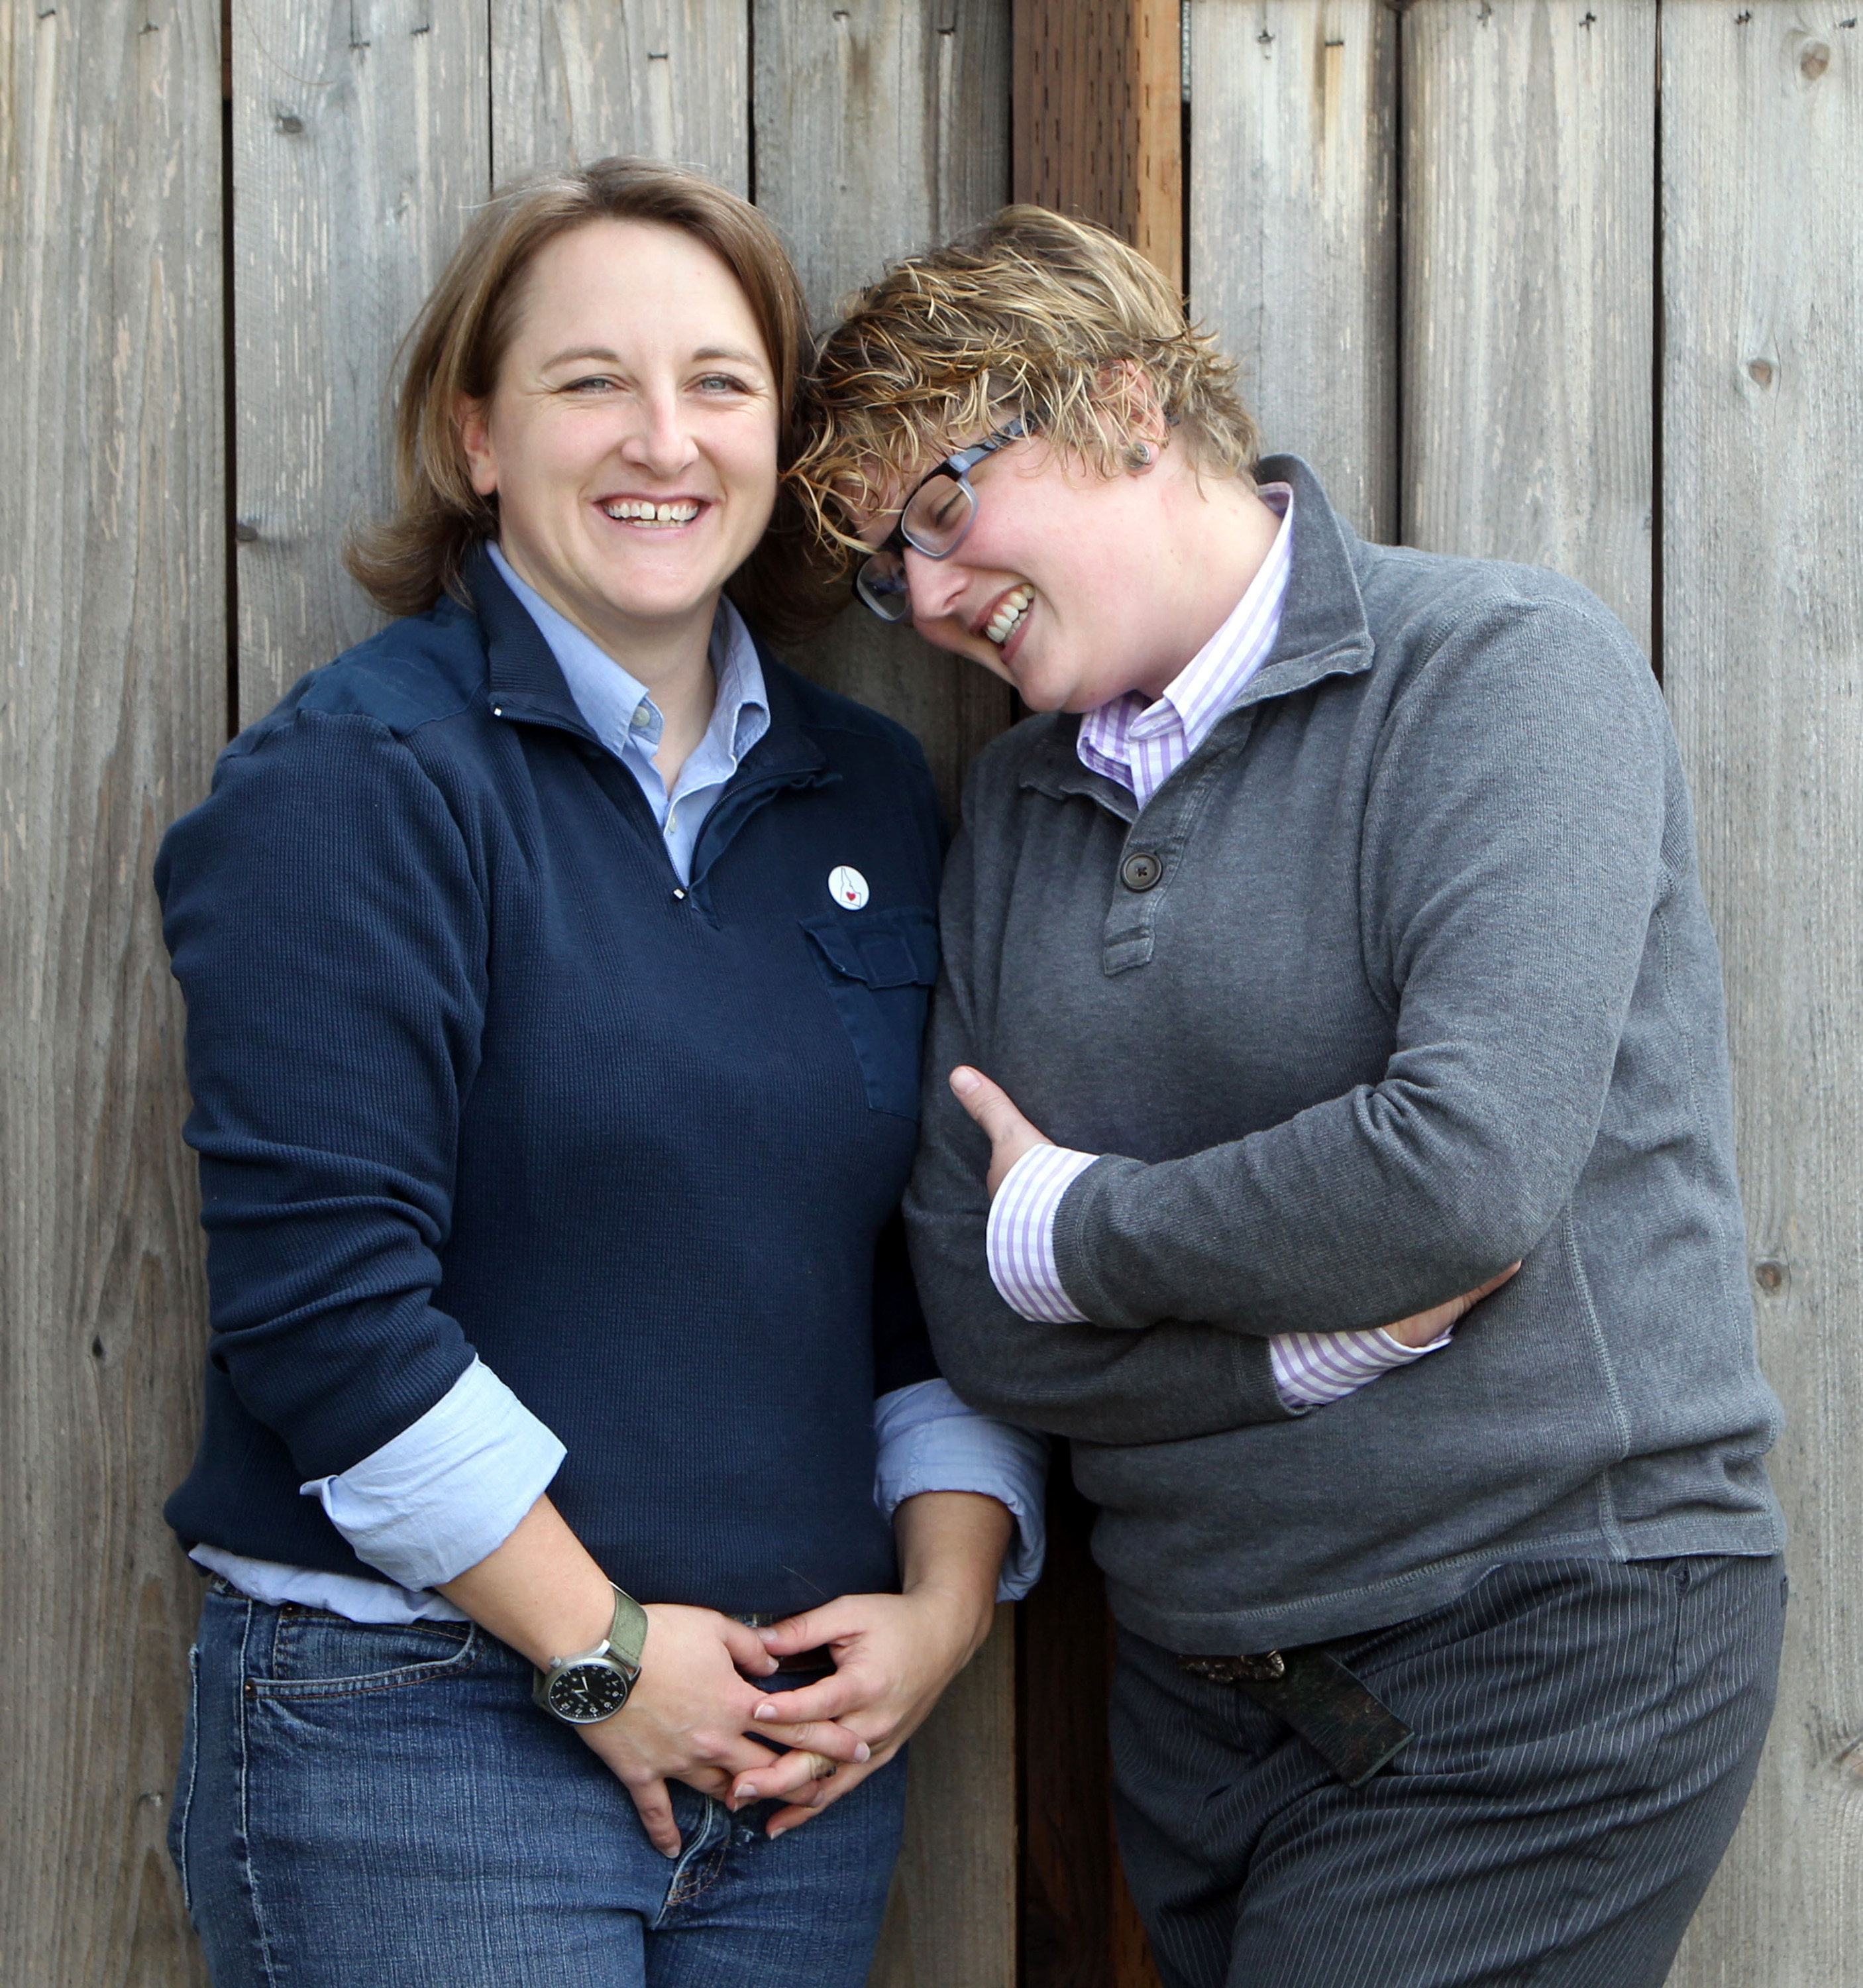 Amber Beierle, left, and Rachael Robertson, photographed on Nov. 8, 2013, are one of the four couples who challenged Idaho's ban on same-sex marriages